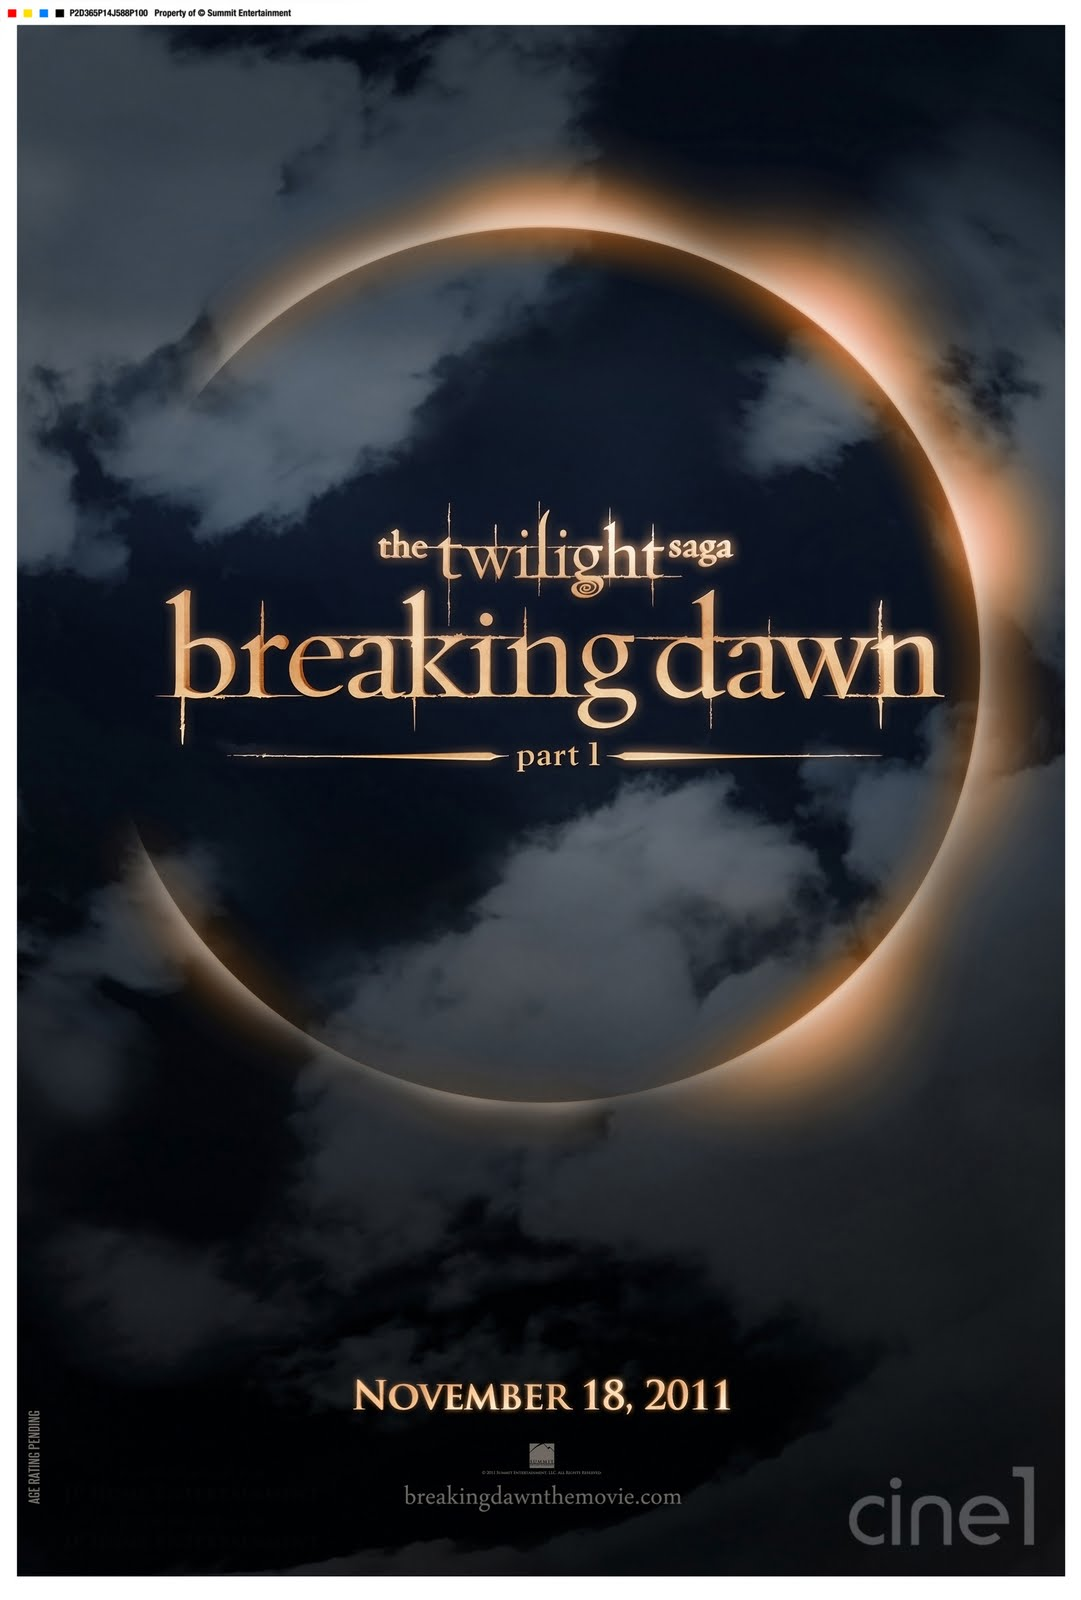 http://4.bp.blogspot.com/-25J5lNAURwc/TvVjXdSShNI/AAAAAAAAK5w/x17D_E5px1A/s1600/poster_%25C2%25A9twilight_breaking_dawn_part1_official_movie_postercine1.jpg